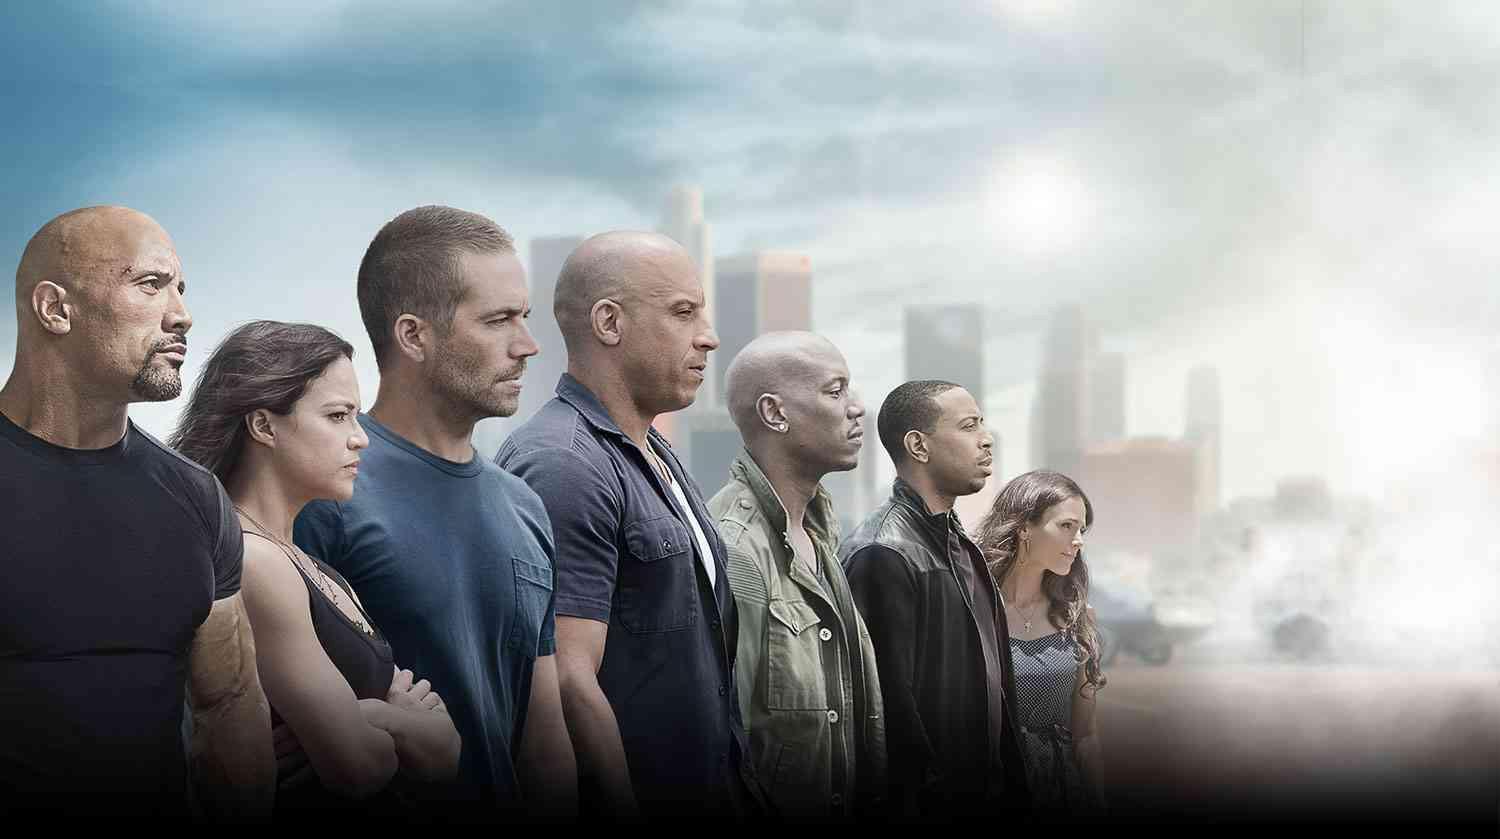 Fast And Furious 9 Hd Wallpaper You Can Download Many Types Of By Wallpaperdunia Medium